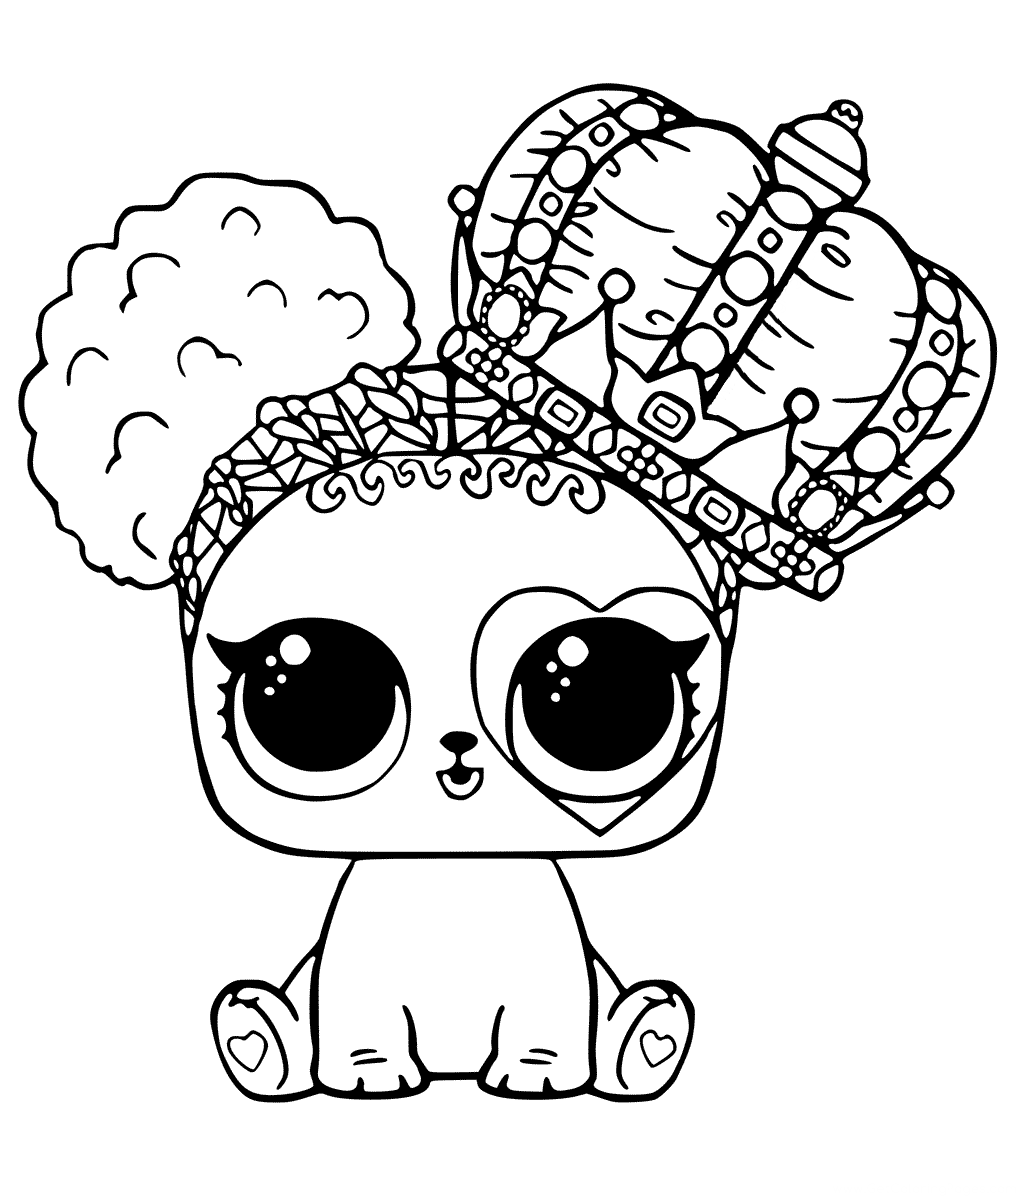 dog lol pets coloring pages lol pets coloring pages miss puppy free printable coloring dog pages lol pets